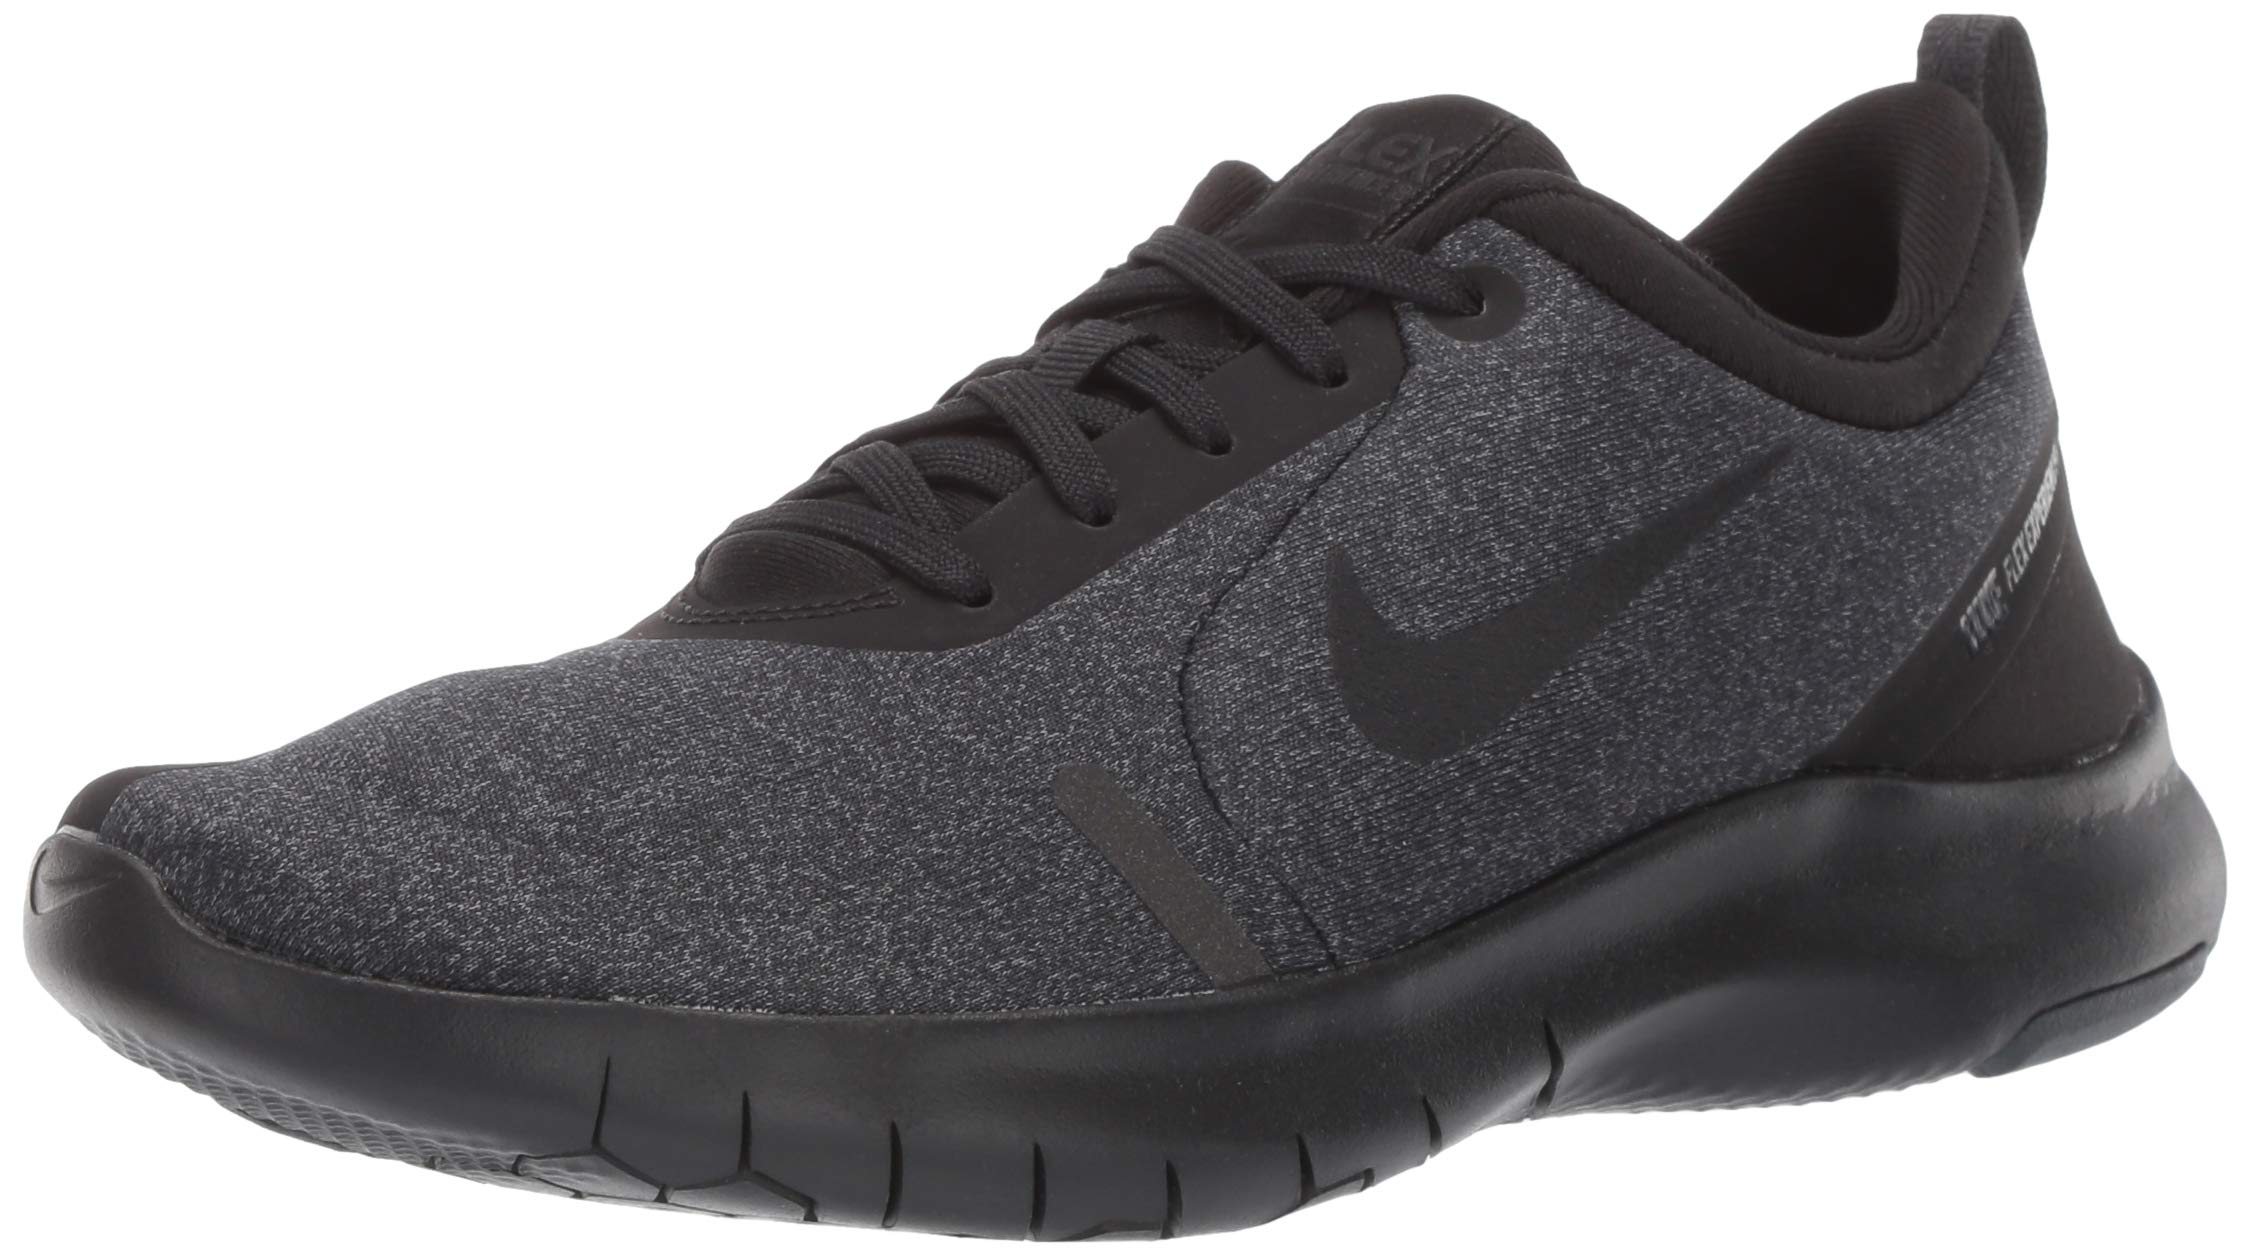 Nike Men's Flex Experience Run 8 Shoe, Black-Anthracite-Dark Grey, 8.5 Regular US